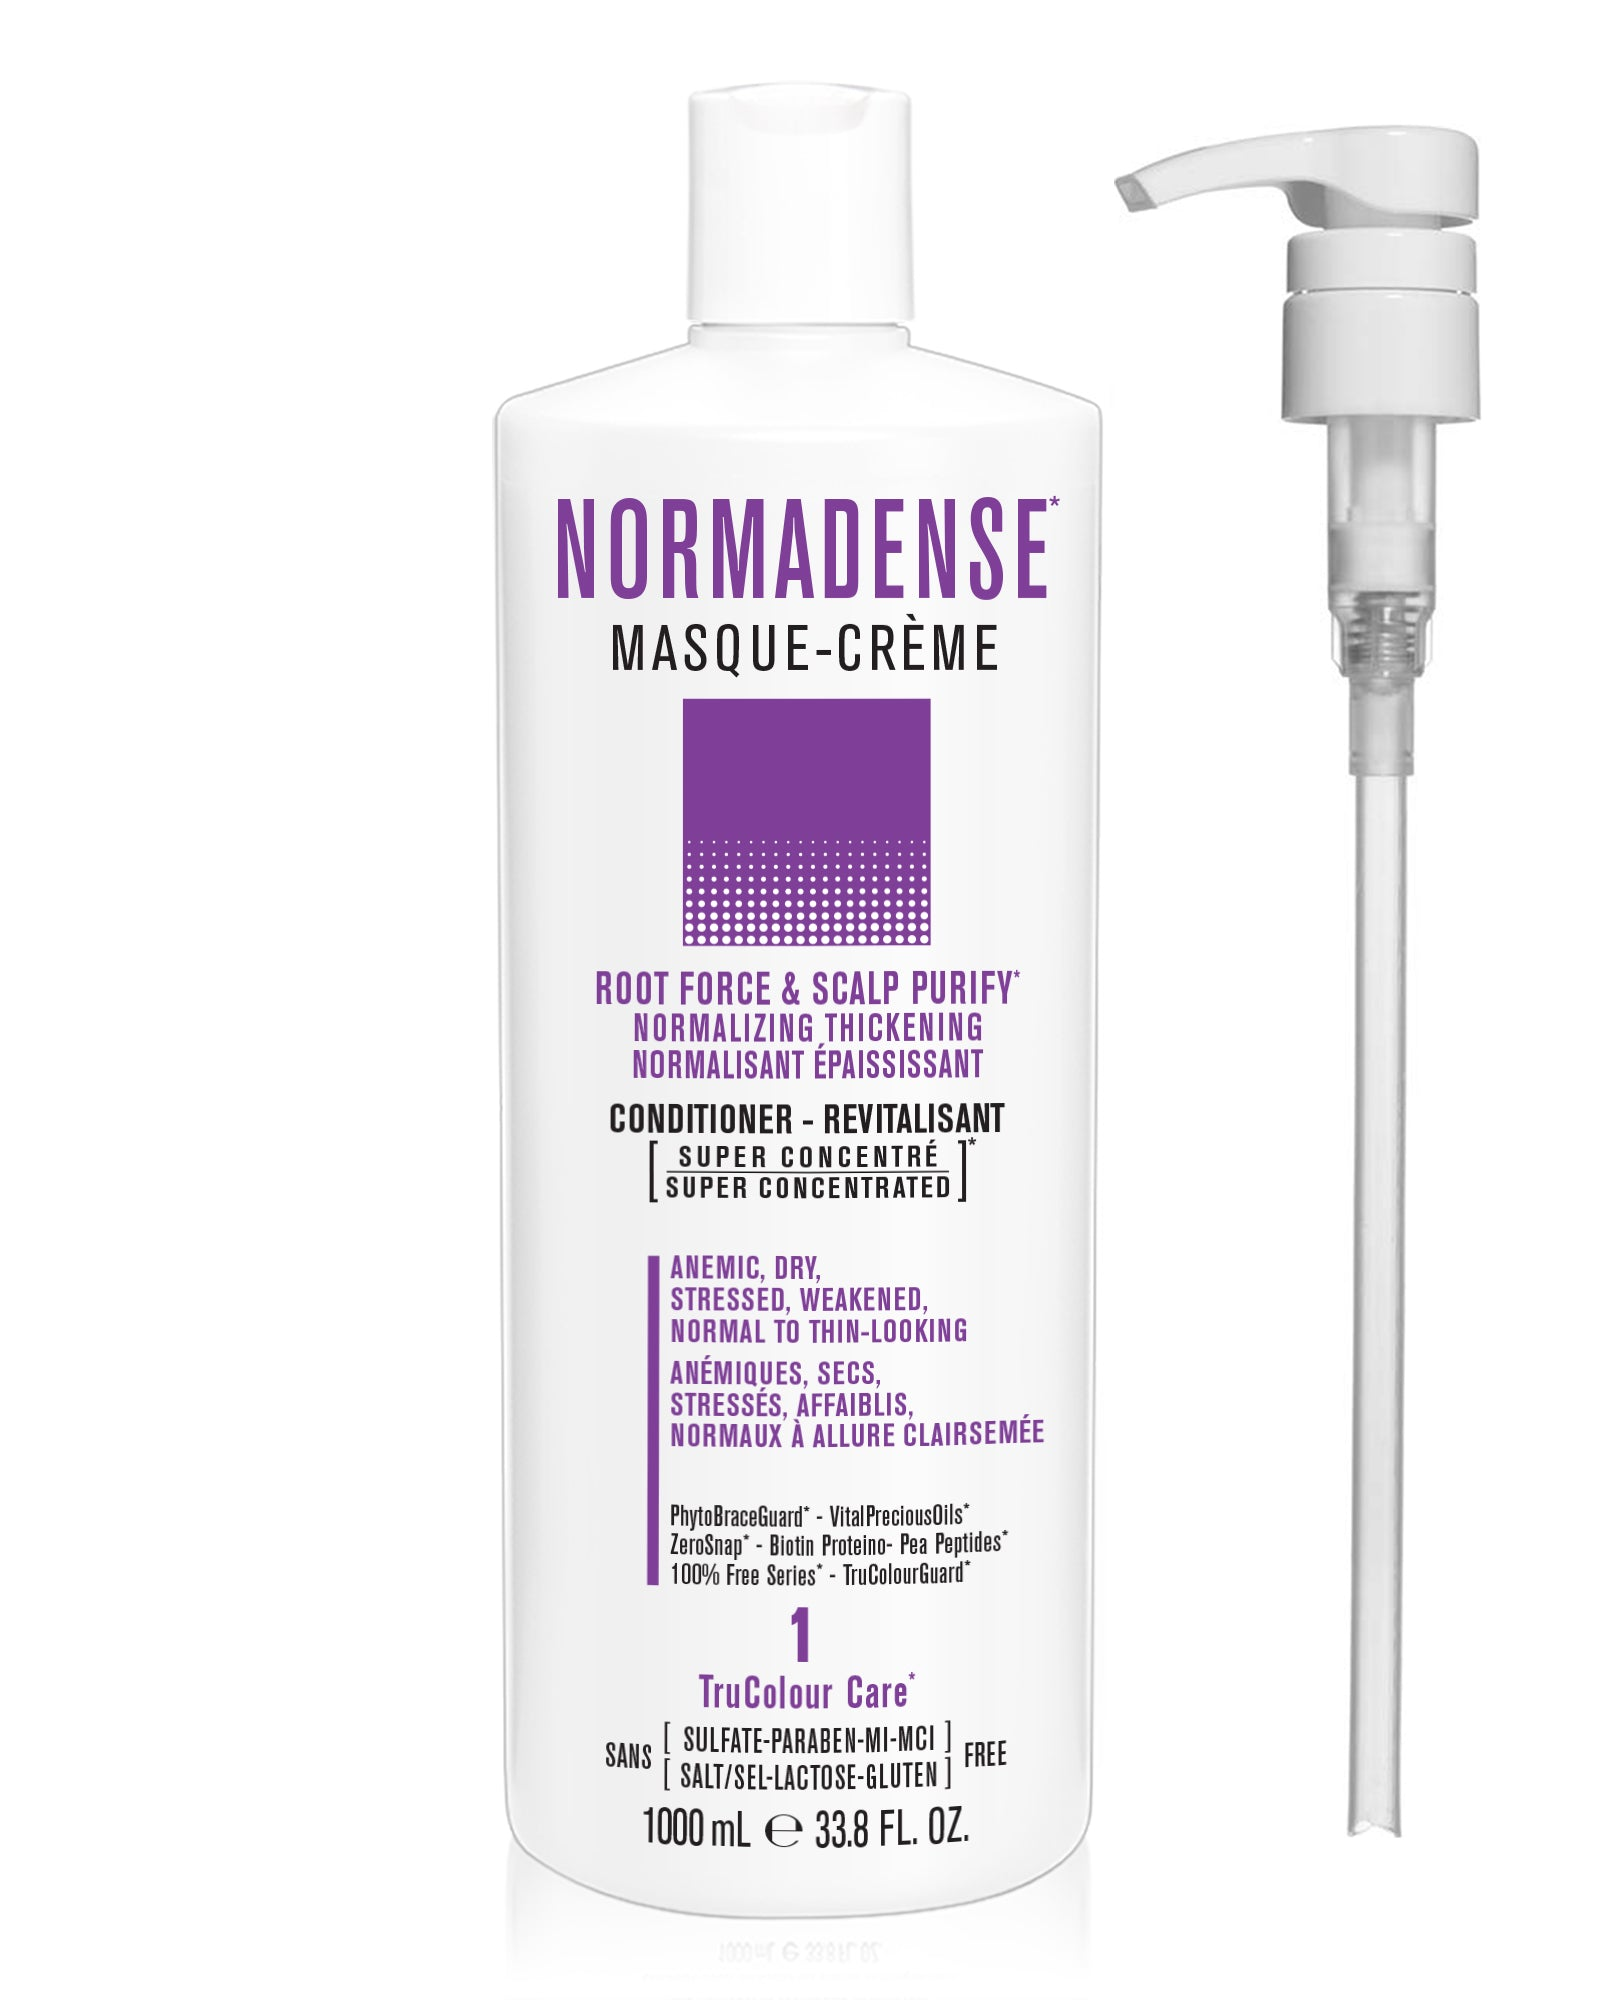 NORMADENSE 1 Scalp Purify Normalizing Thickening Masque-Creme (conditioner) - SNOBGIRLS.com